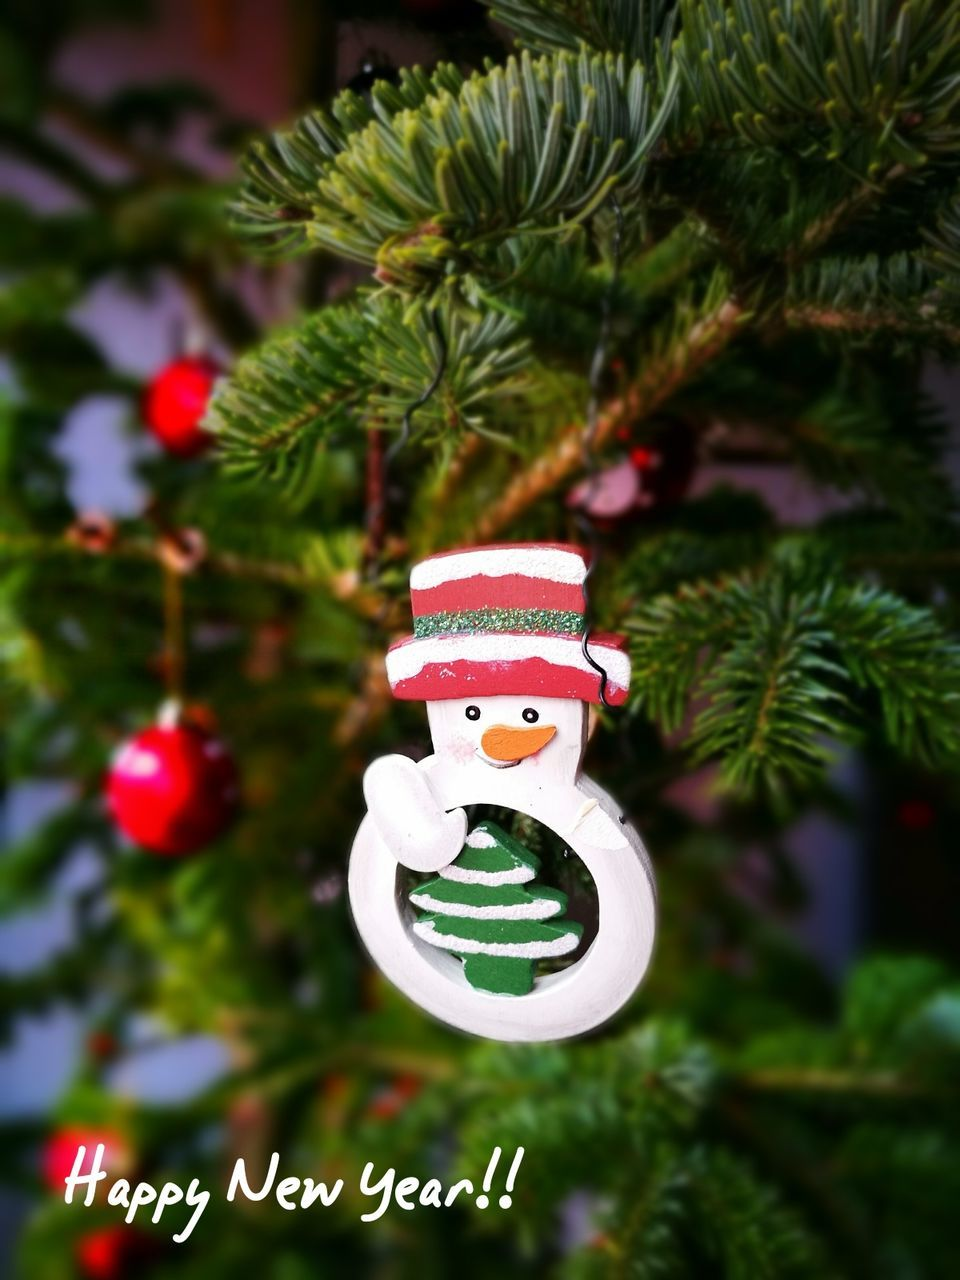 christmas, celebration, christmas tree, christmas decoration, decoration, green color, tradition, human representation, close-up, no people, christmas ornament, focus on foreground, cultures, holiday - event, indoors, hanging, tree, snowman, vacations, day